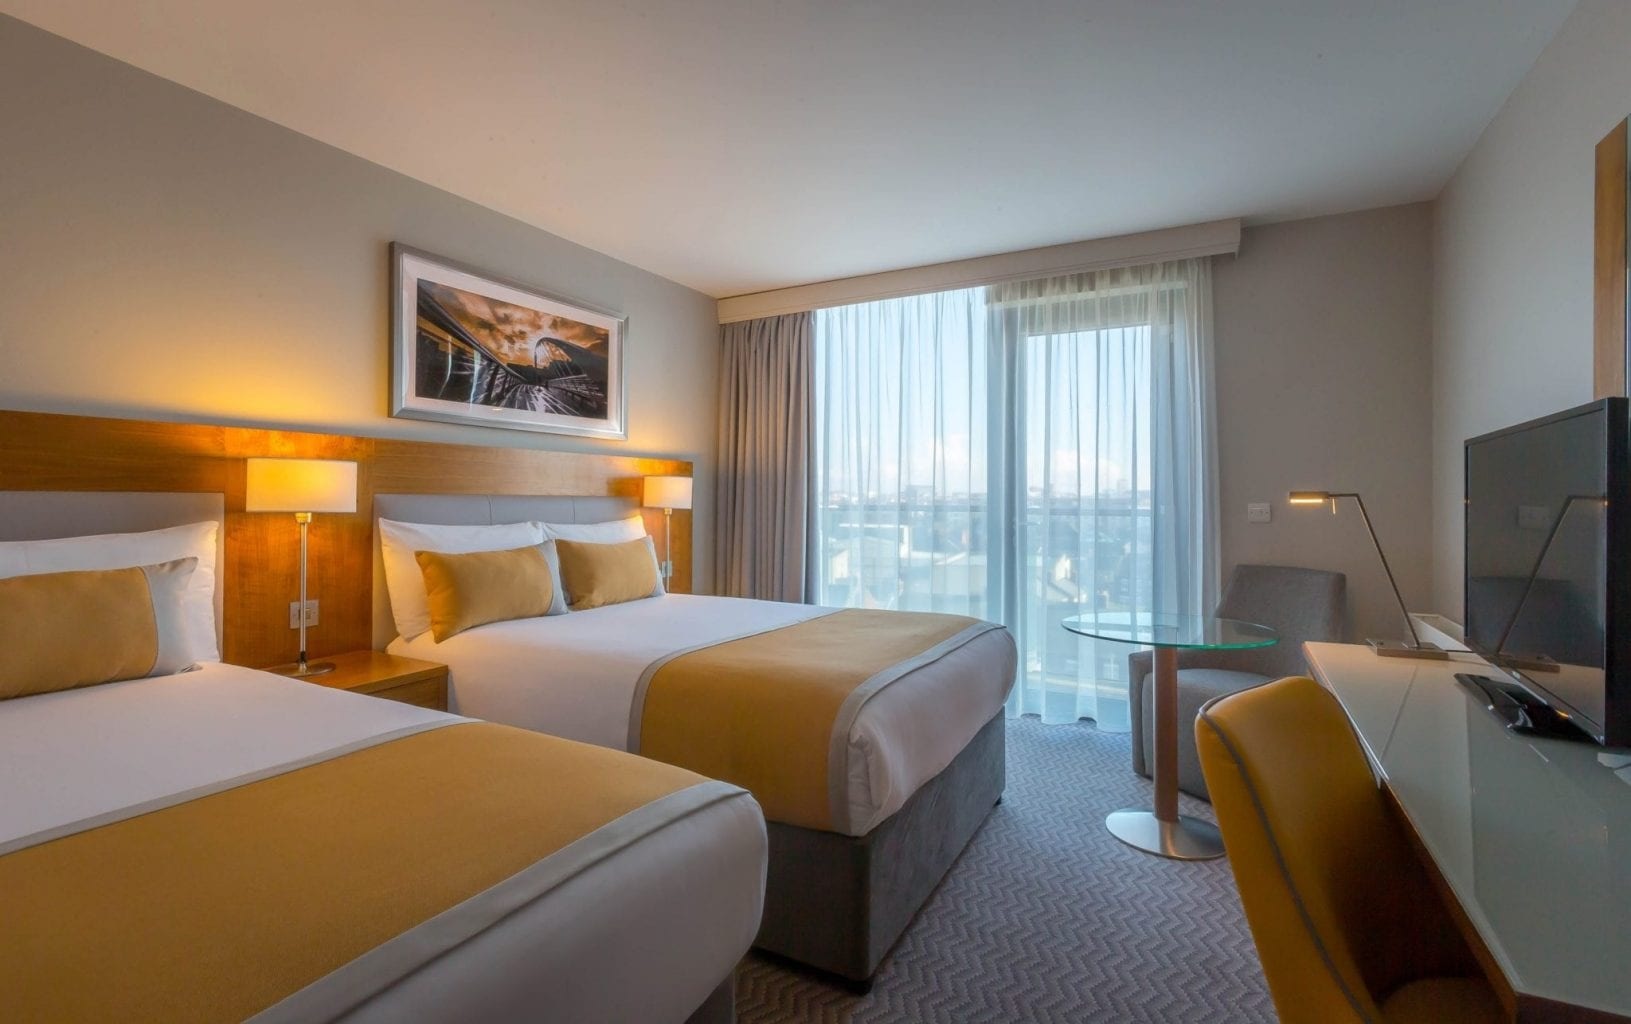 Affordable Hotel Rooms Dublin Ireland